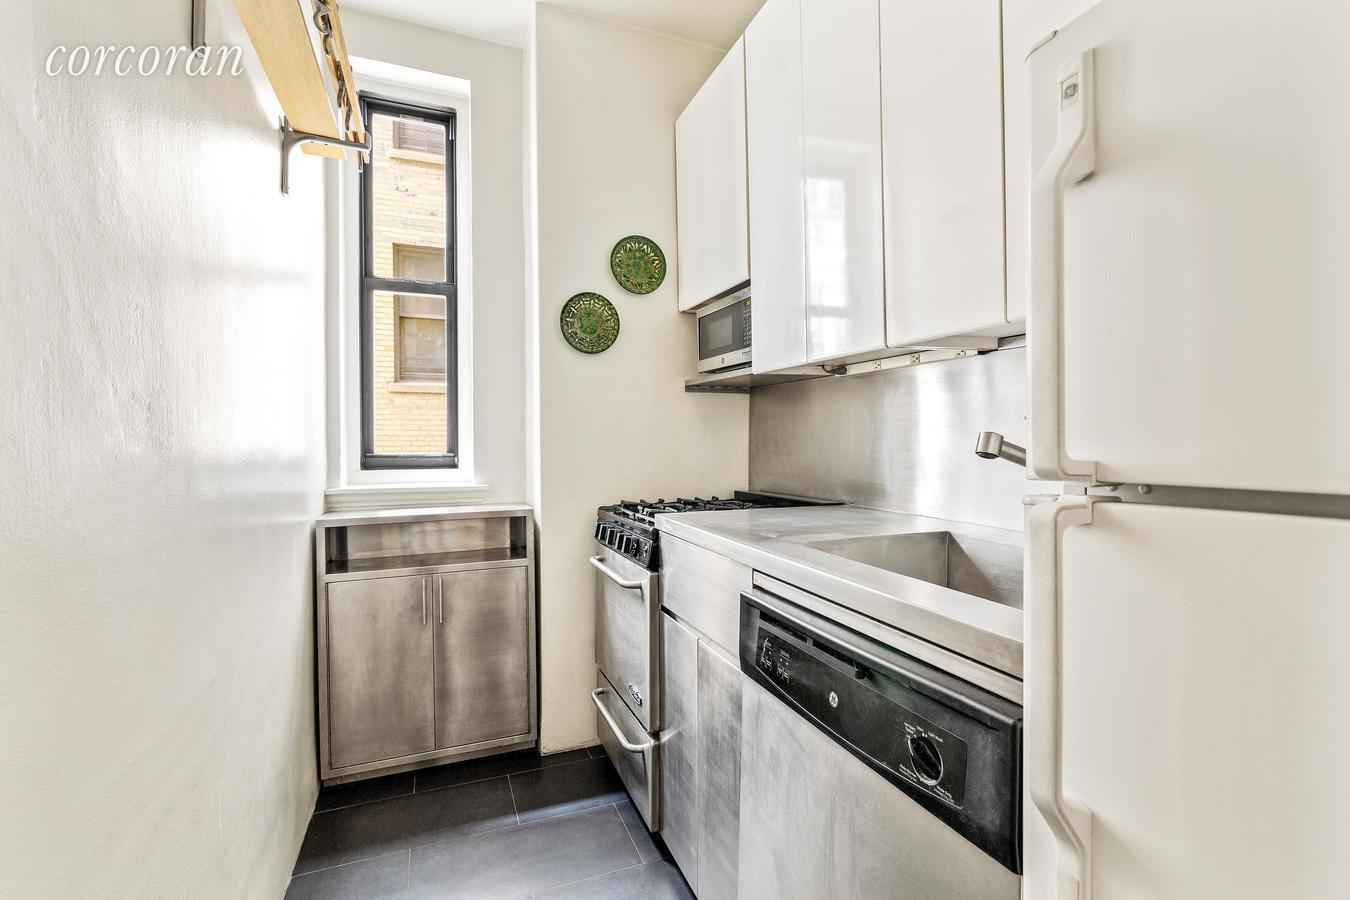 Apartment for sale at 590 West End Avenue, Apt 9B